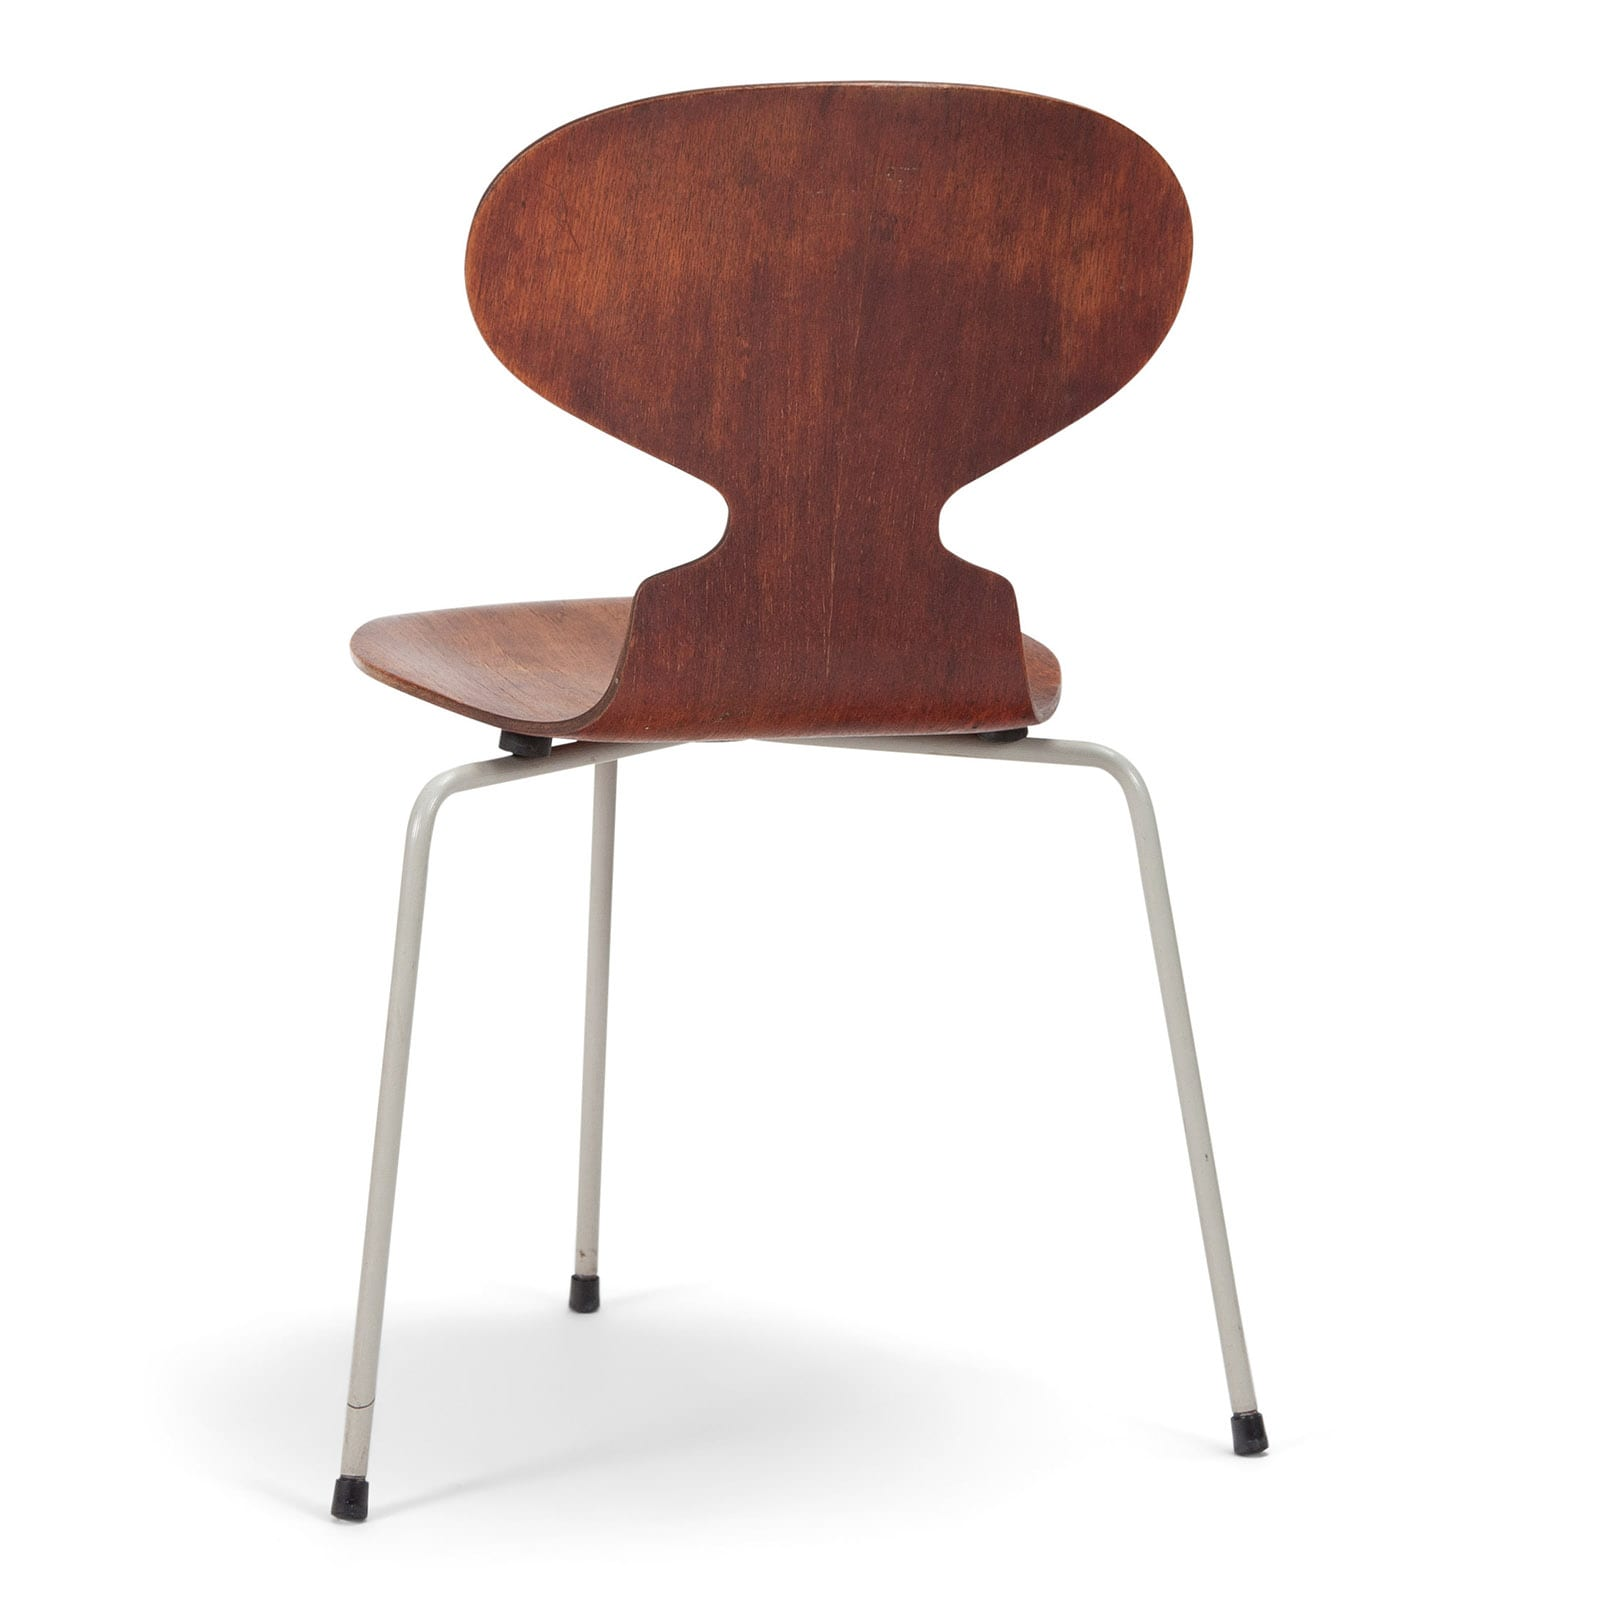 Early Ant chair